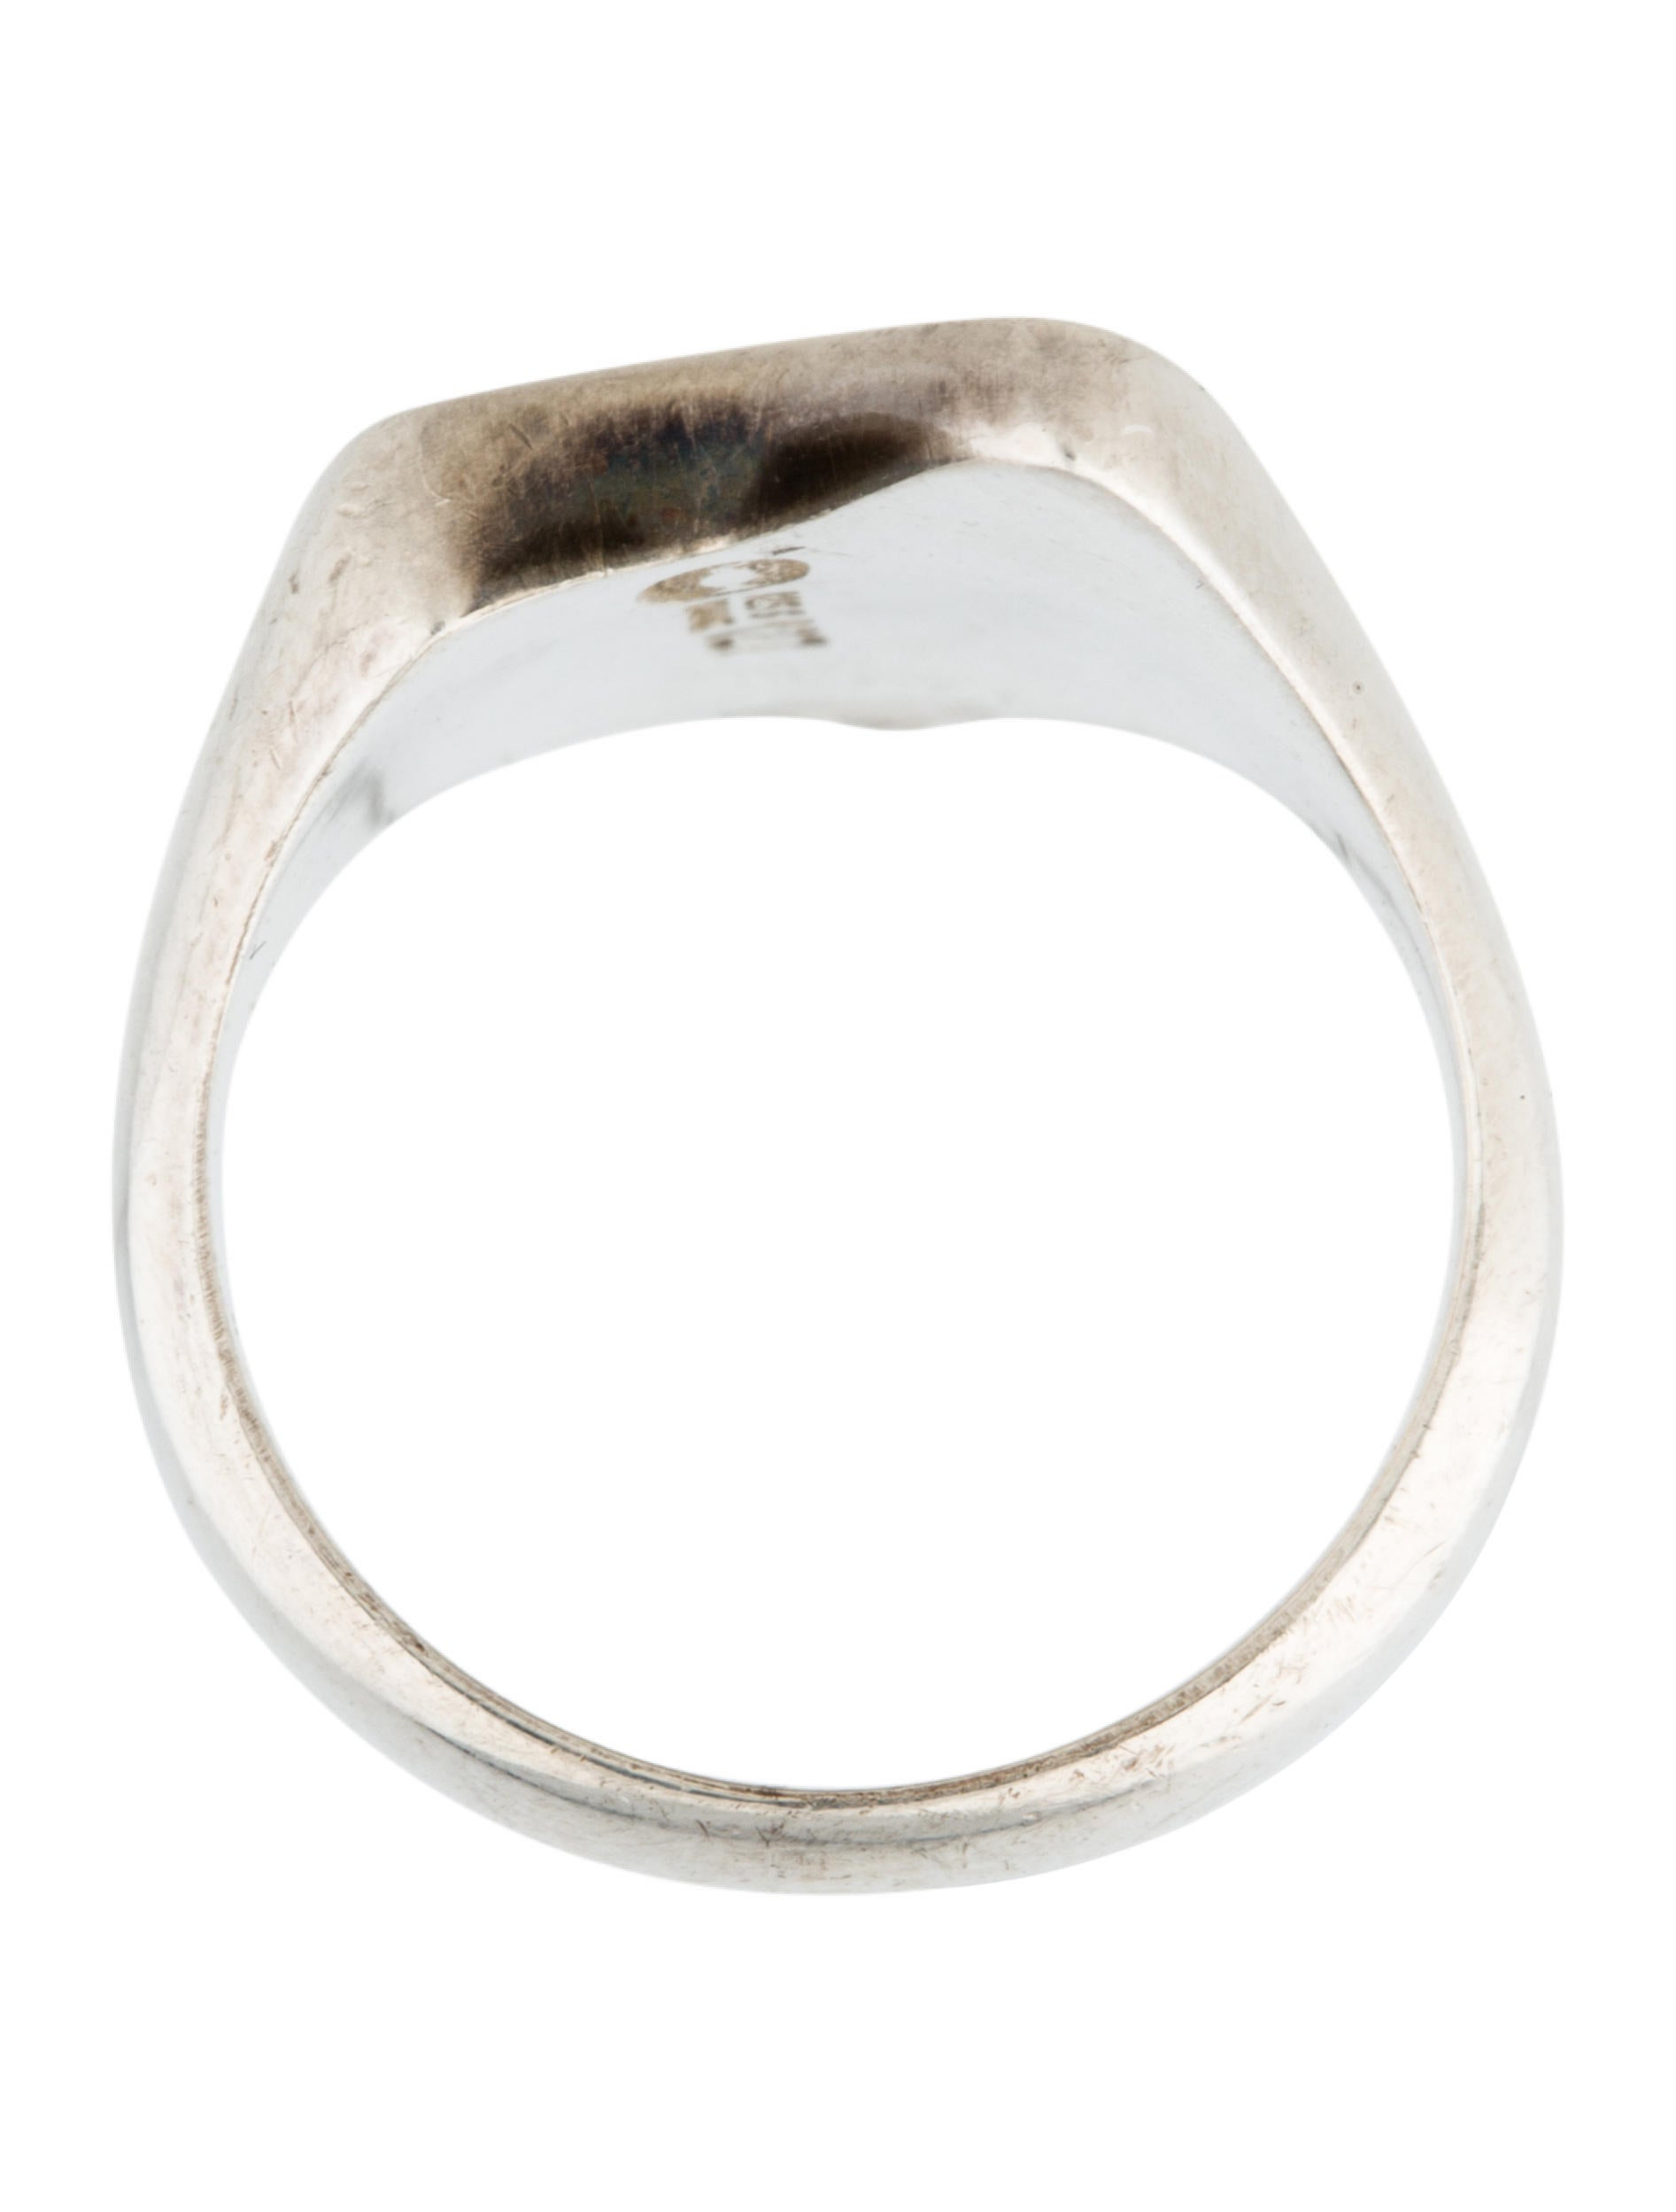 Georg jensen silver abstraction ring rings gjj20141 for Artistic accents genuine silver decoration